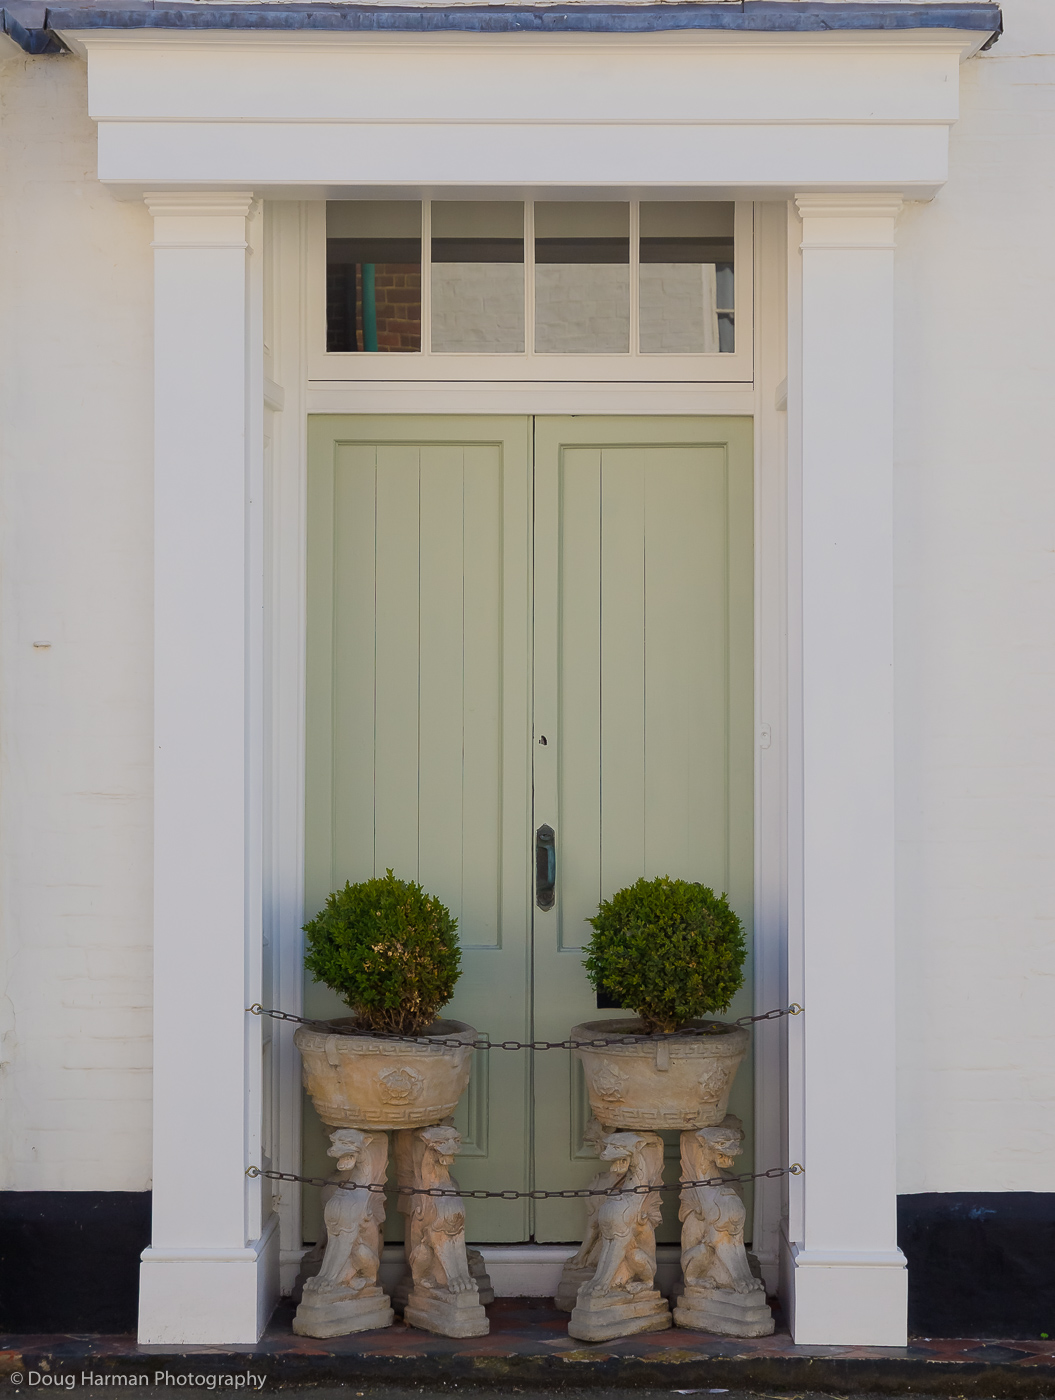 A green door and two planters. part of my Doorways project.